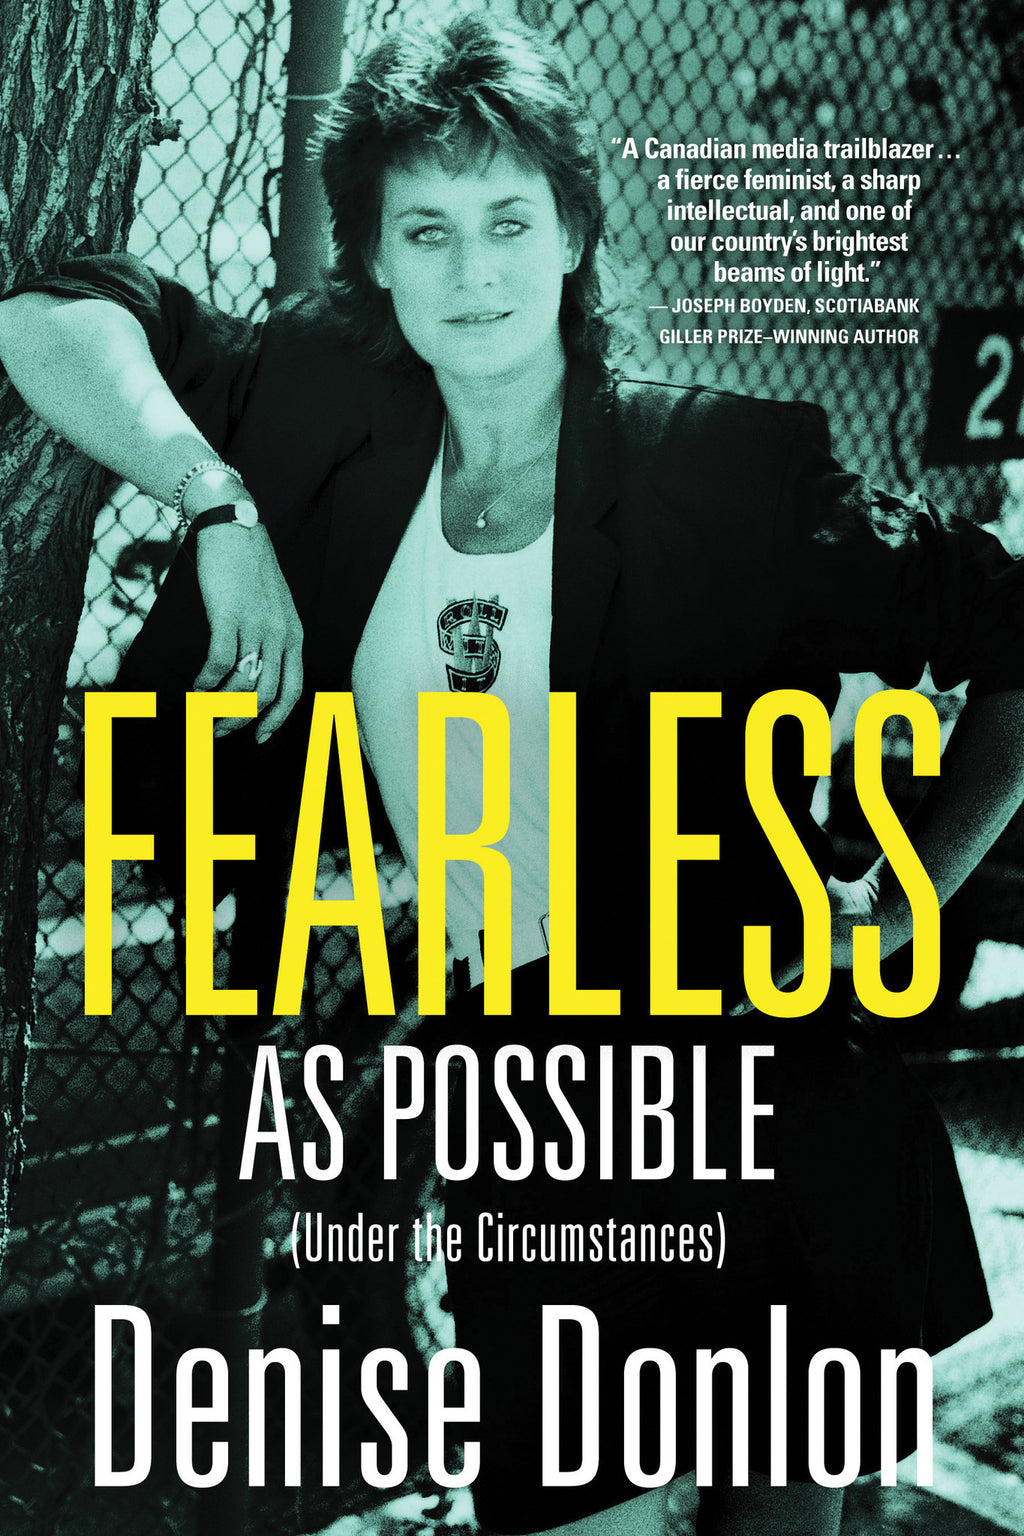 Fearless as Possible (Under the Circumstances) Signed First Edition Hardcover